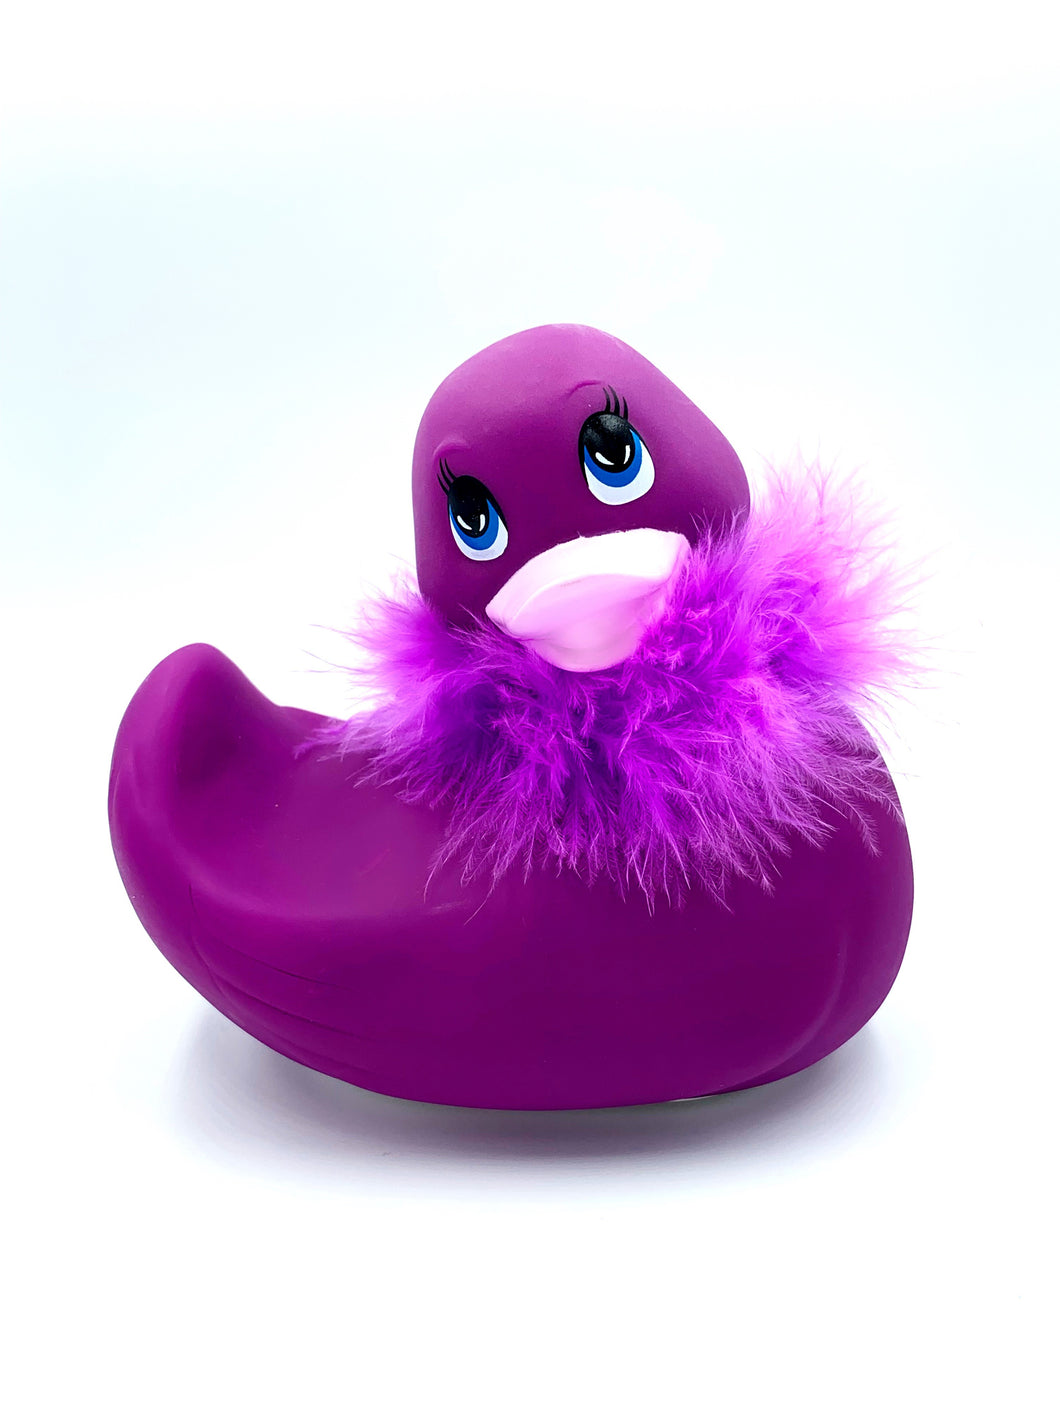 vibrating duck  tub vibrator  rubber duck vibrator  massager for the tub  duck vibrator  duck tub vibrator  duck bath toy  Discreet vibrator  big duck vibrator  bath vibrator  bath toy  adult bath toy, purple duck vibrator